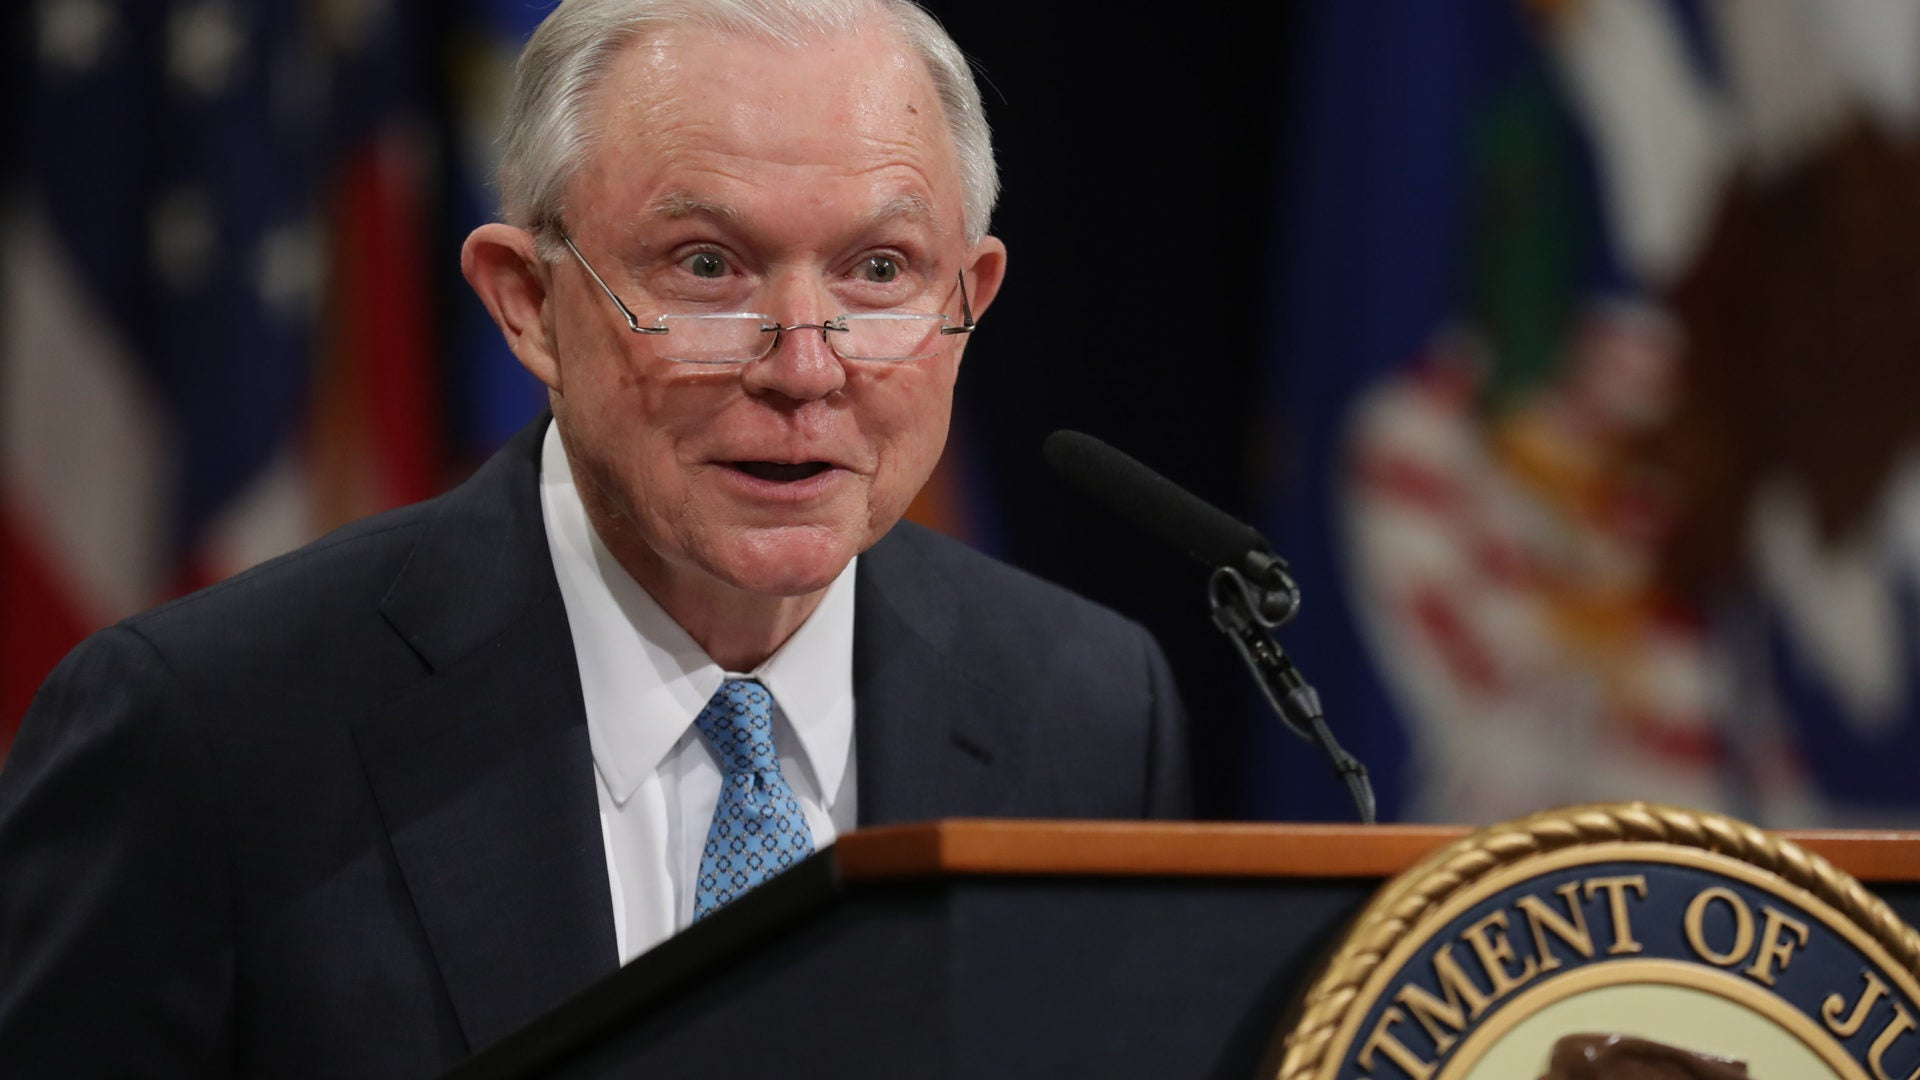 Trump Campaign Tells 'Delusional' Jeff Sessions To Stop Connecting Himself To The President